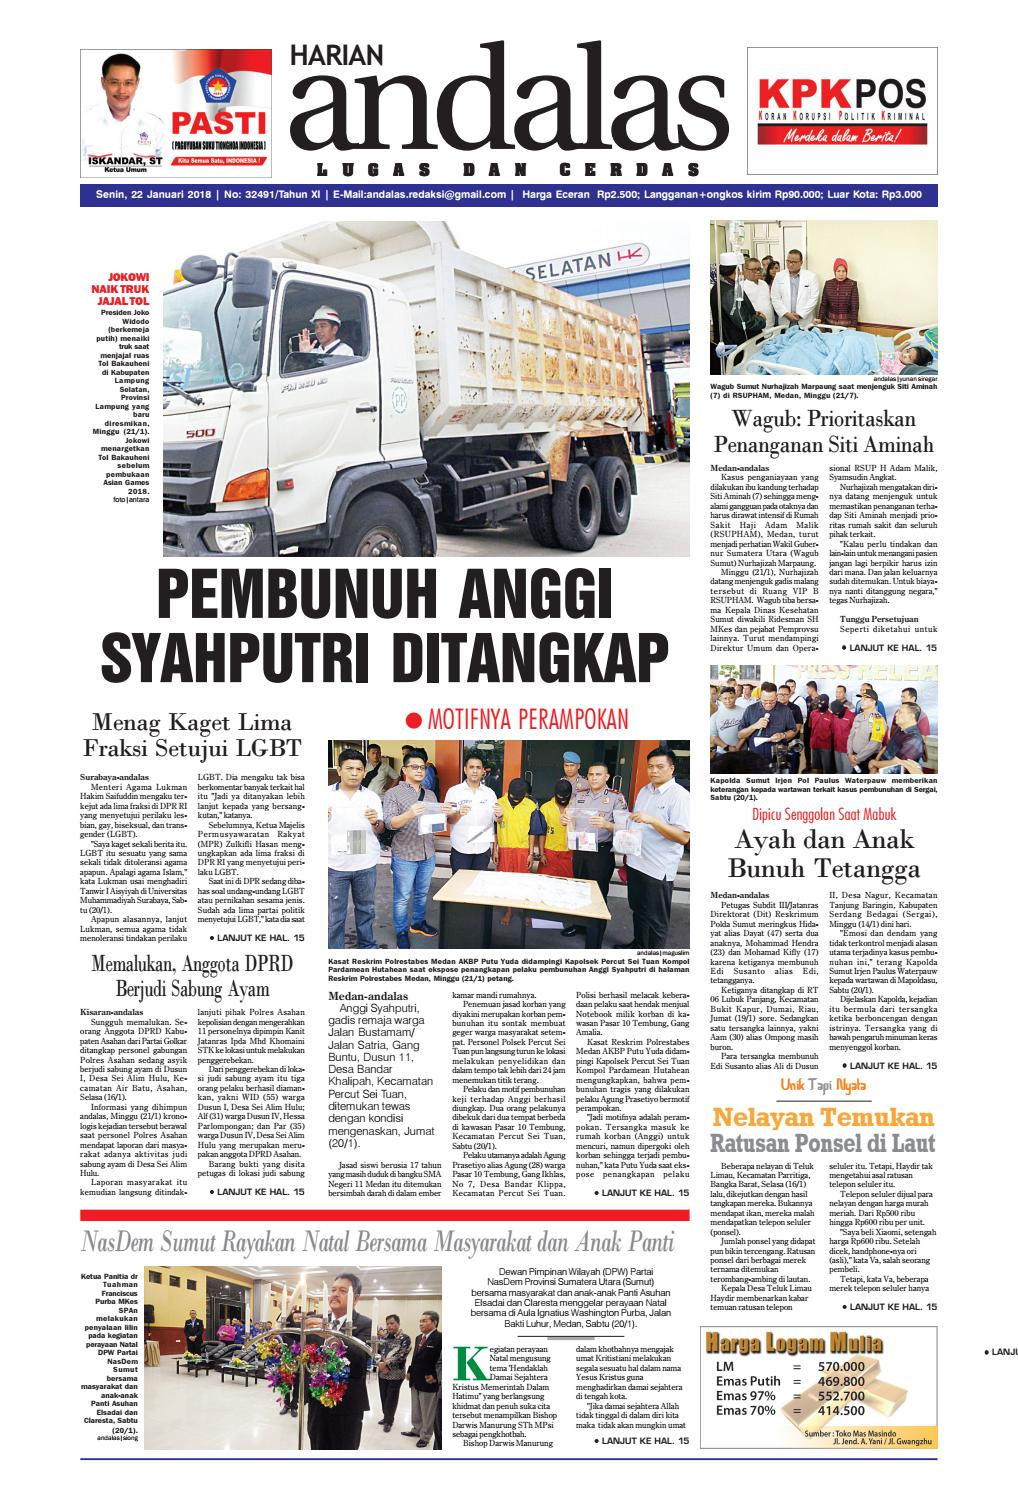 Epaper andalas edisi senin 22 januari 2018 by media andalas issuu